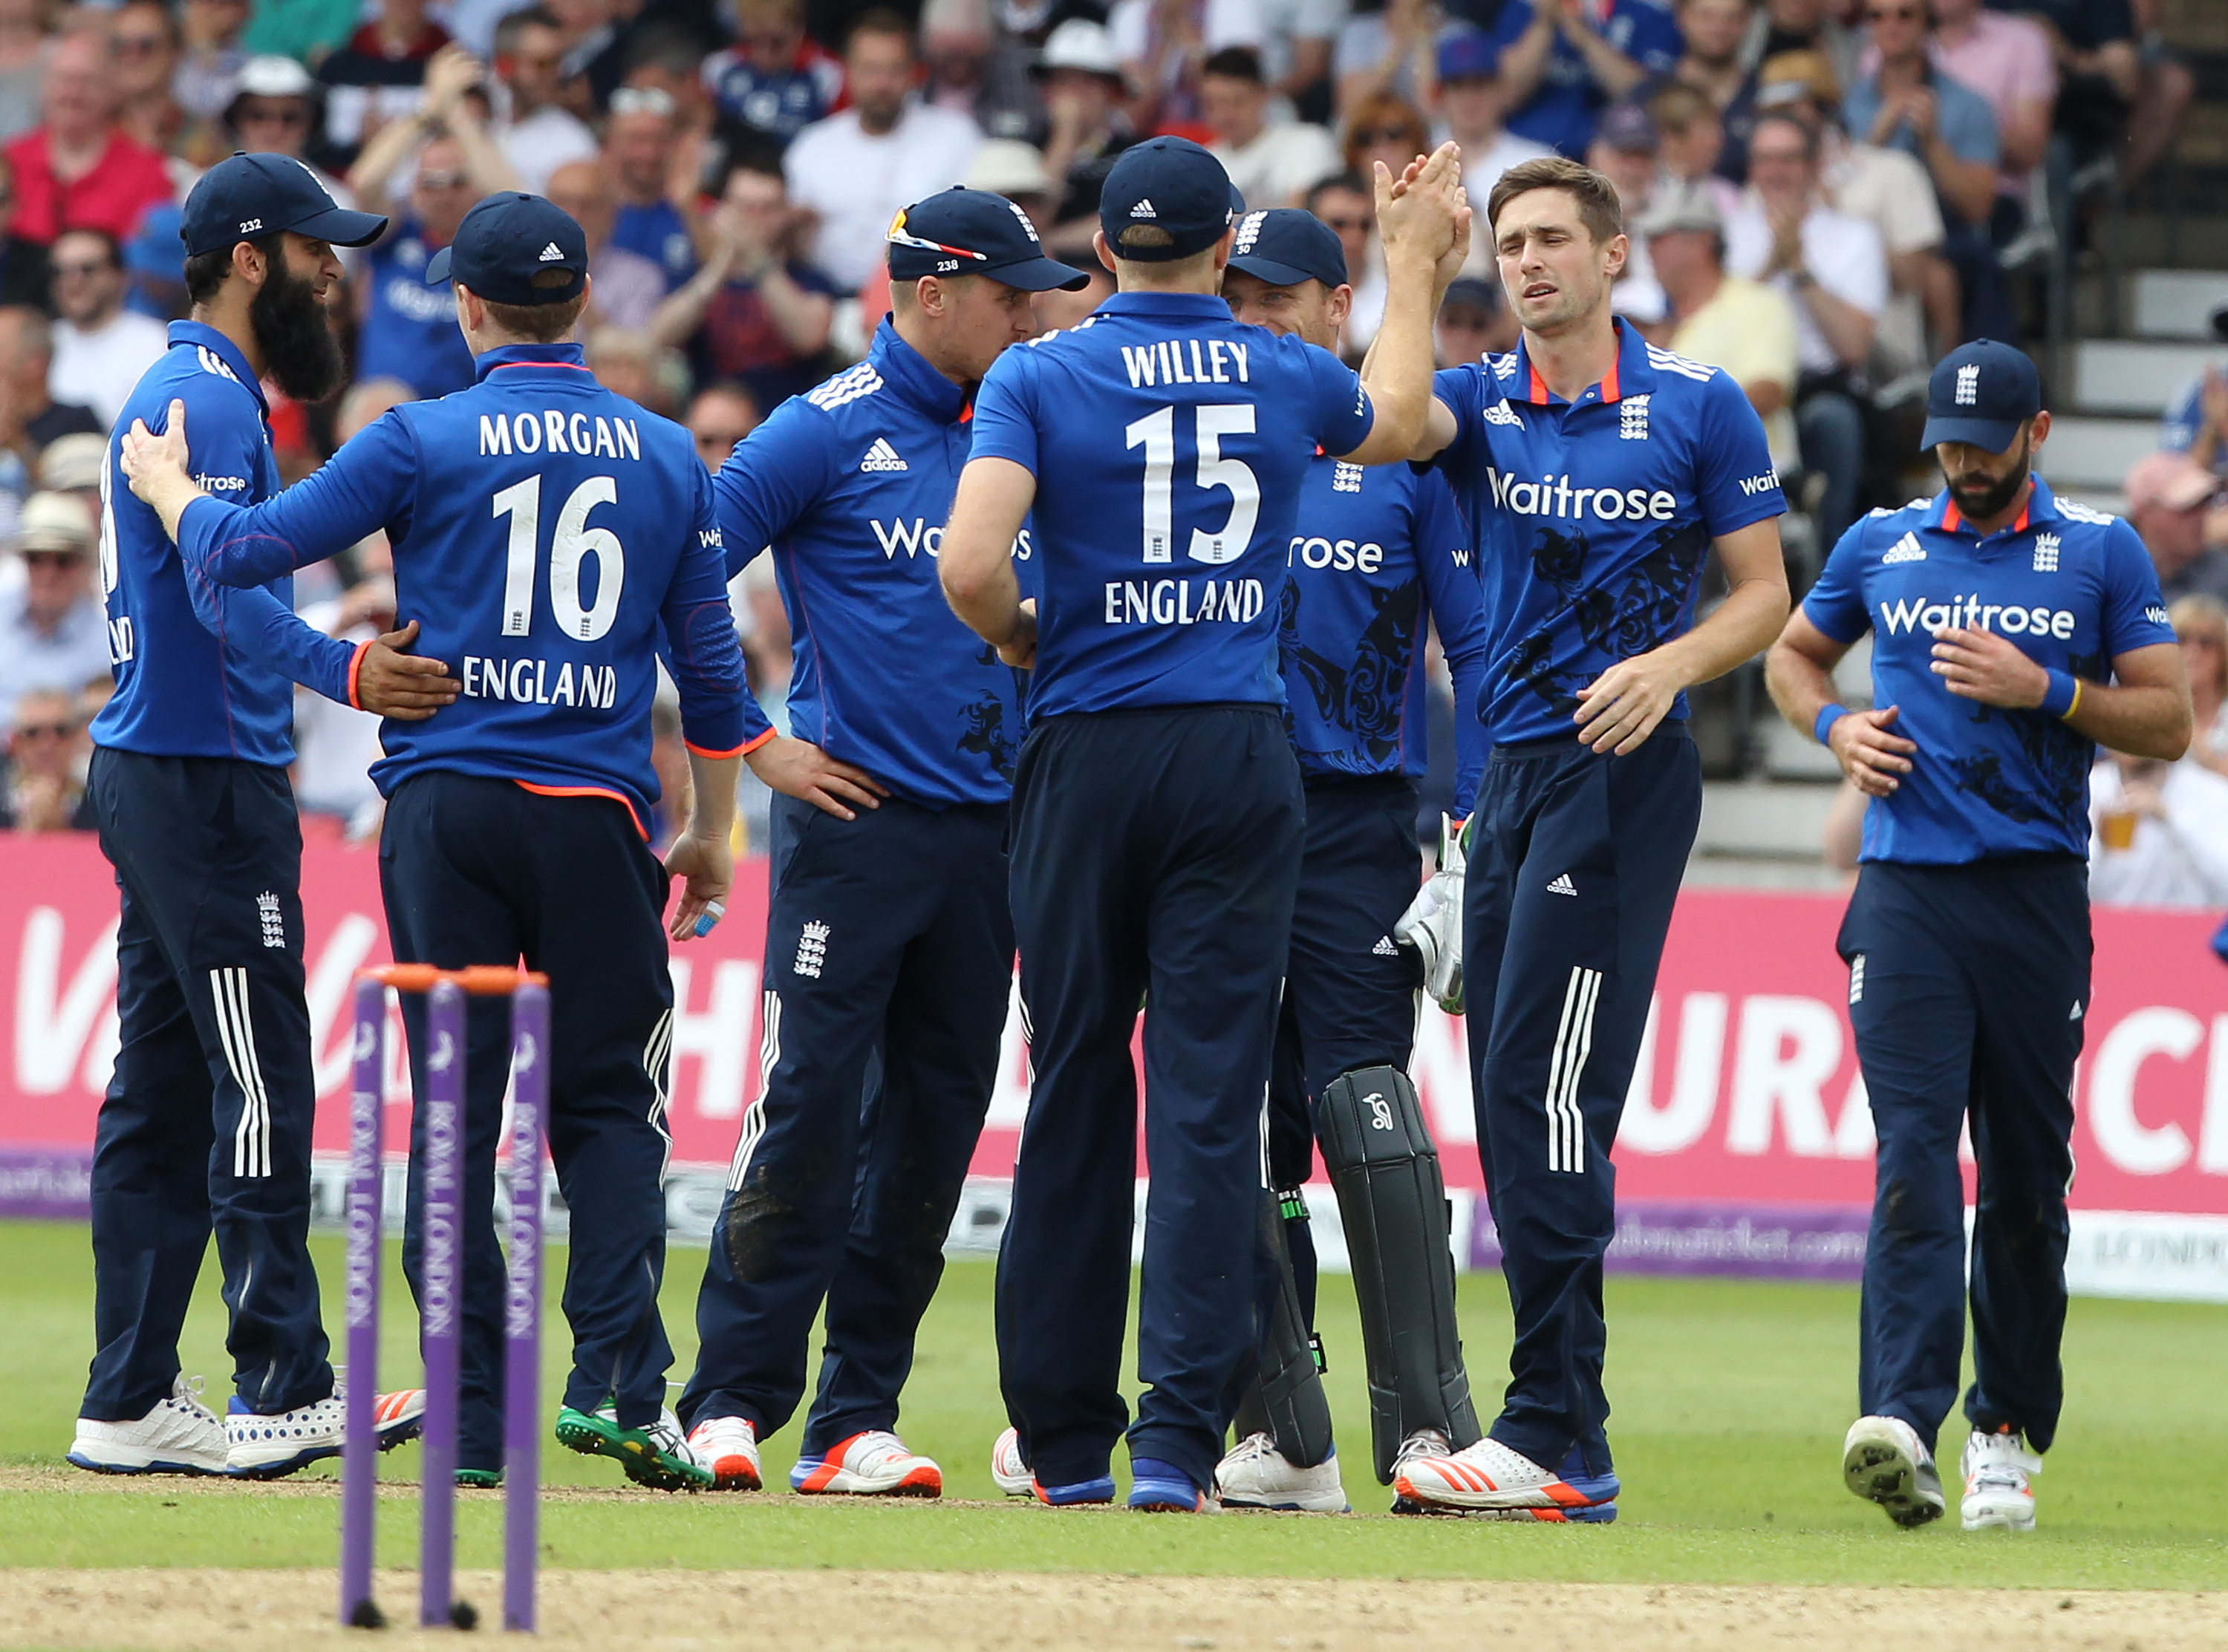 England's Chris Woakes (2nd R) celebrates with teammates after taking the wicket of Sri Lanka's Seekkuge Prasanna (not pictured) during play in the first one day international (ODI) cricket match between England and Sri Lanka at Trent Bridge cricket ground in Nottingham, central England, on June 21, 2016. England captain Eoin Morgan won the toss and elected to field against Sri Lanka in the first one-day international at Trent Bridge on Tuesday. / AFP PHOTO / Lindsey PARNABY